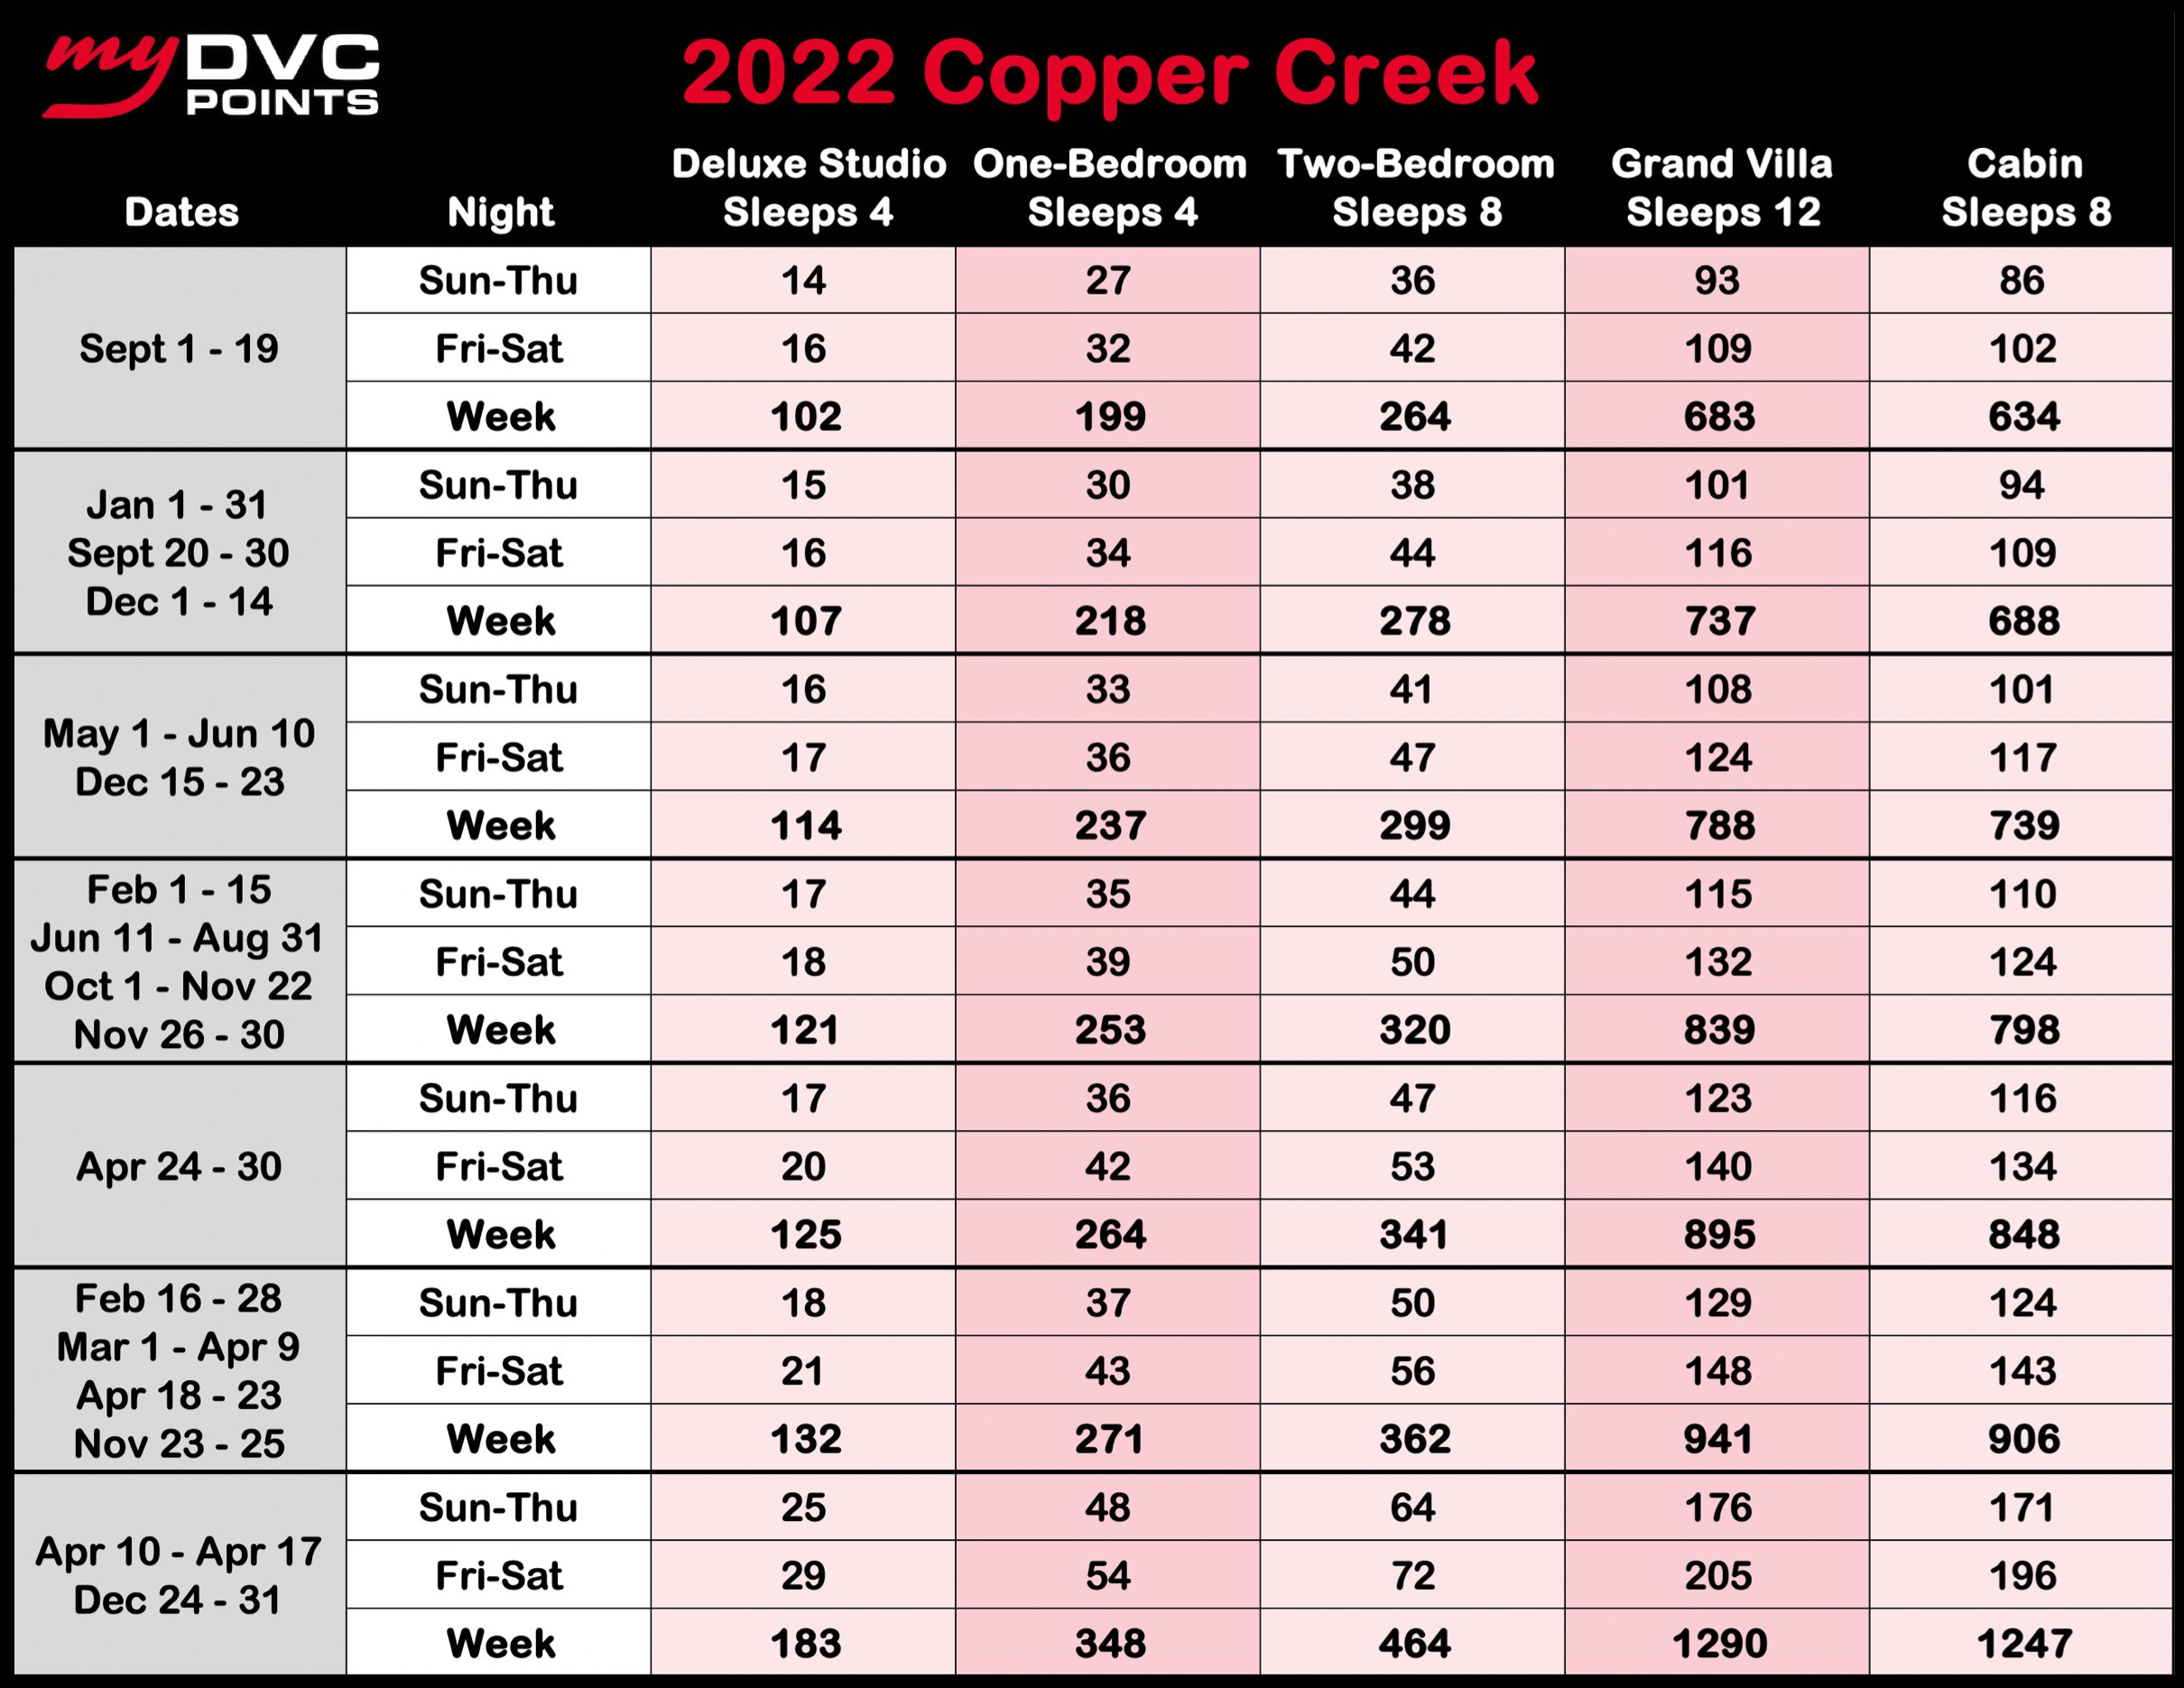 Copper Creek Villas and Cabin's at Disney's Wilderness Lodge 2022 Point Charts